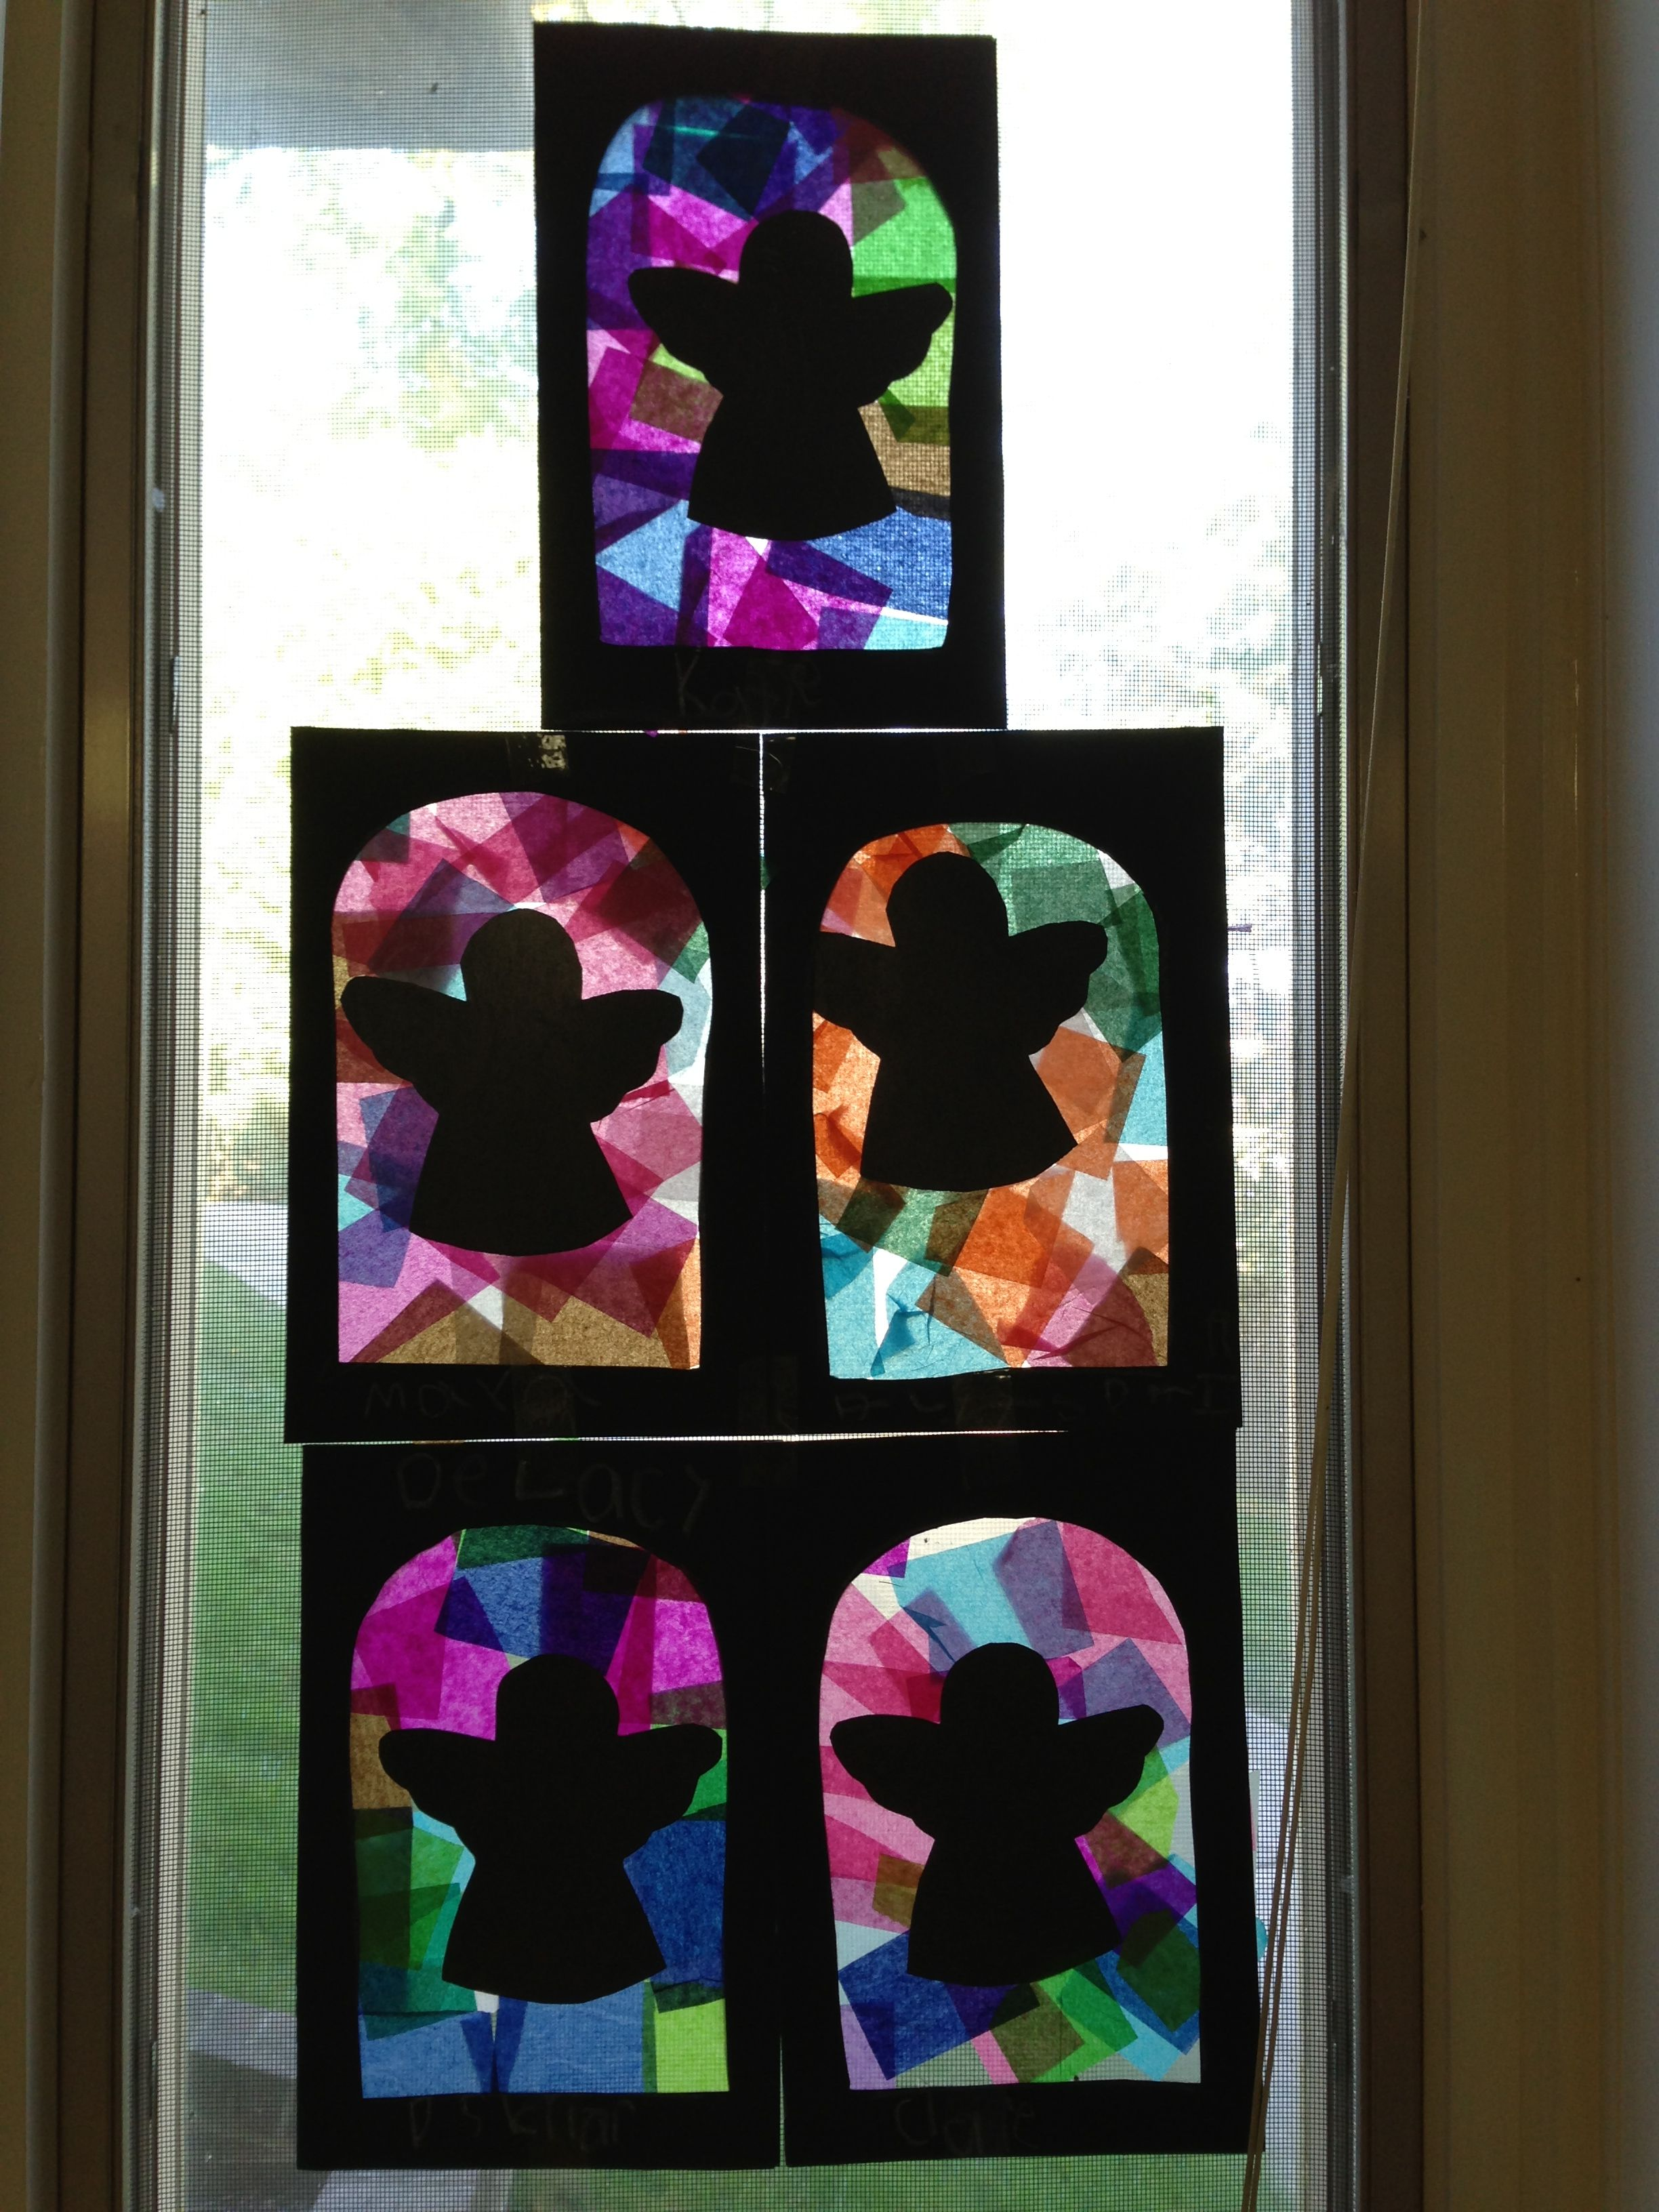 Angels Made A Stained Glass Window Effect By Using Tissue Paper Pieces And Black Construction P Black Construction Paper Silhouette Christmas Angel Silhouette